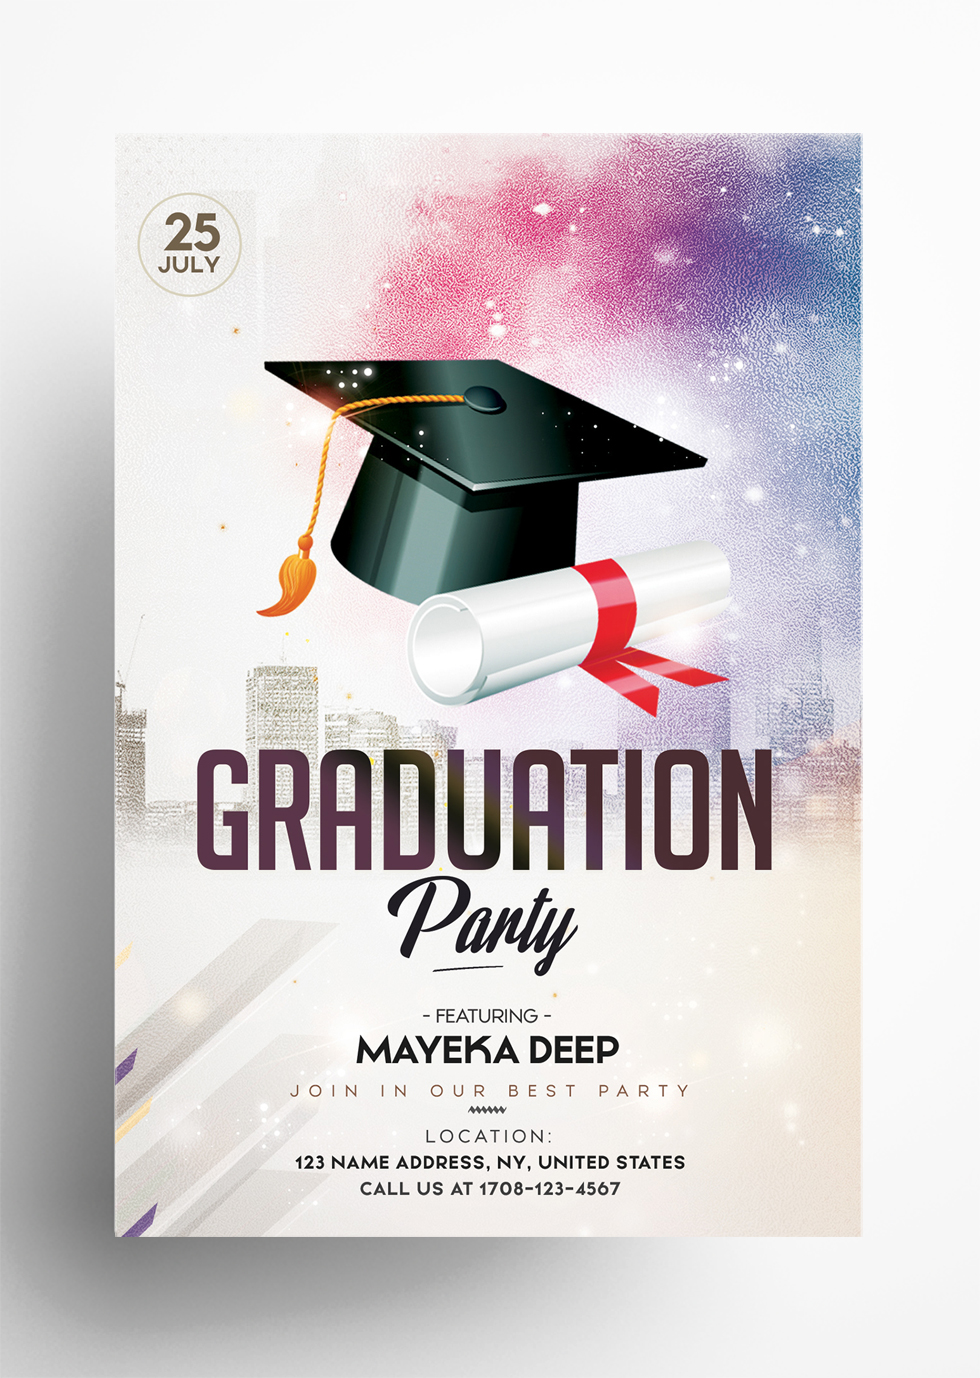 Graduation Party - Free PSD Flyer Template